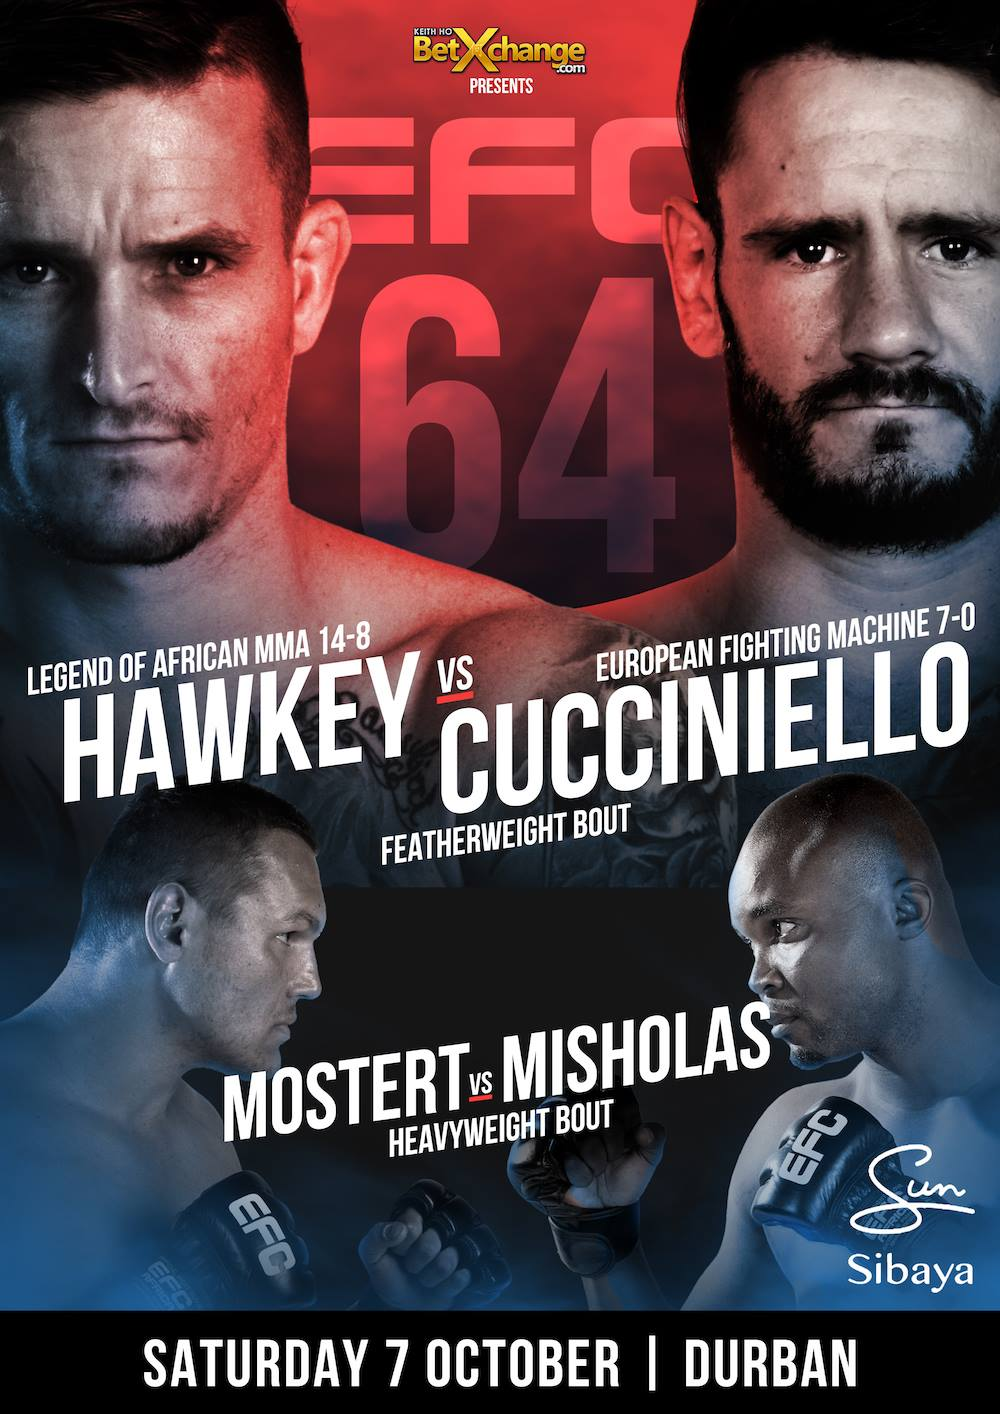 EFC 64 brings 13 exciting MMA fights to Durban on 7 October 2017